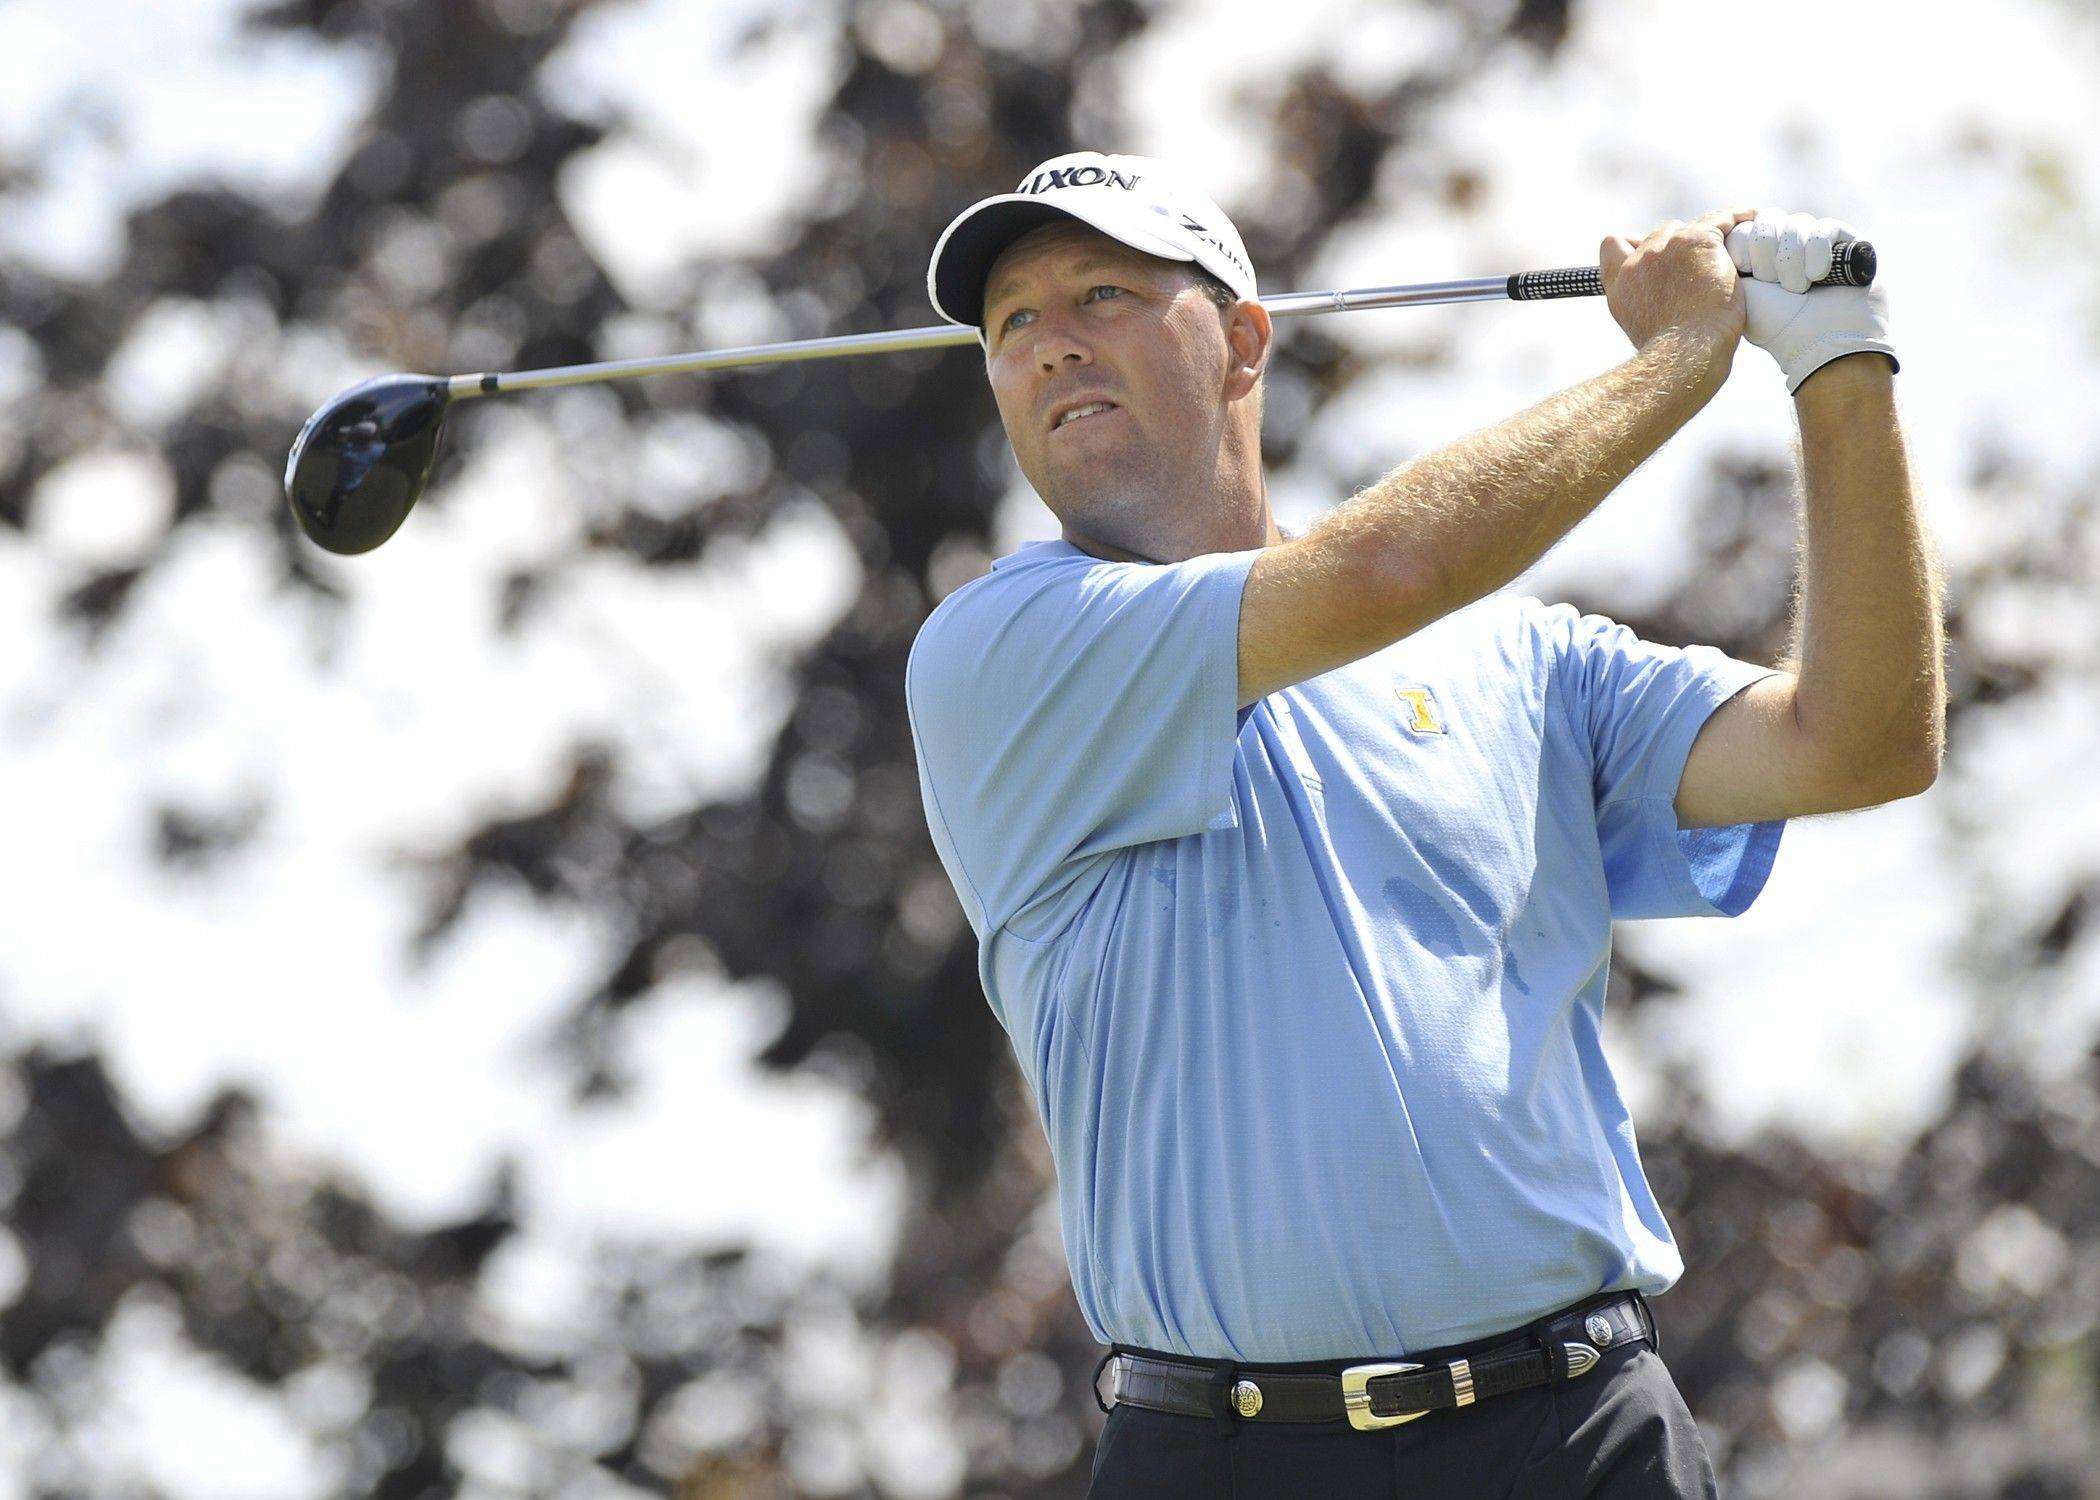 Illinois golf coach Mike Small has started the local golf season with another victory. He won the Illinois PGA stroke play tournament in Bloomington on Monday, edging Elgin's Jonathan Duppler.